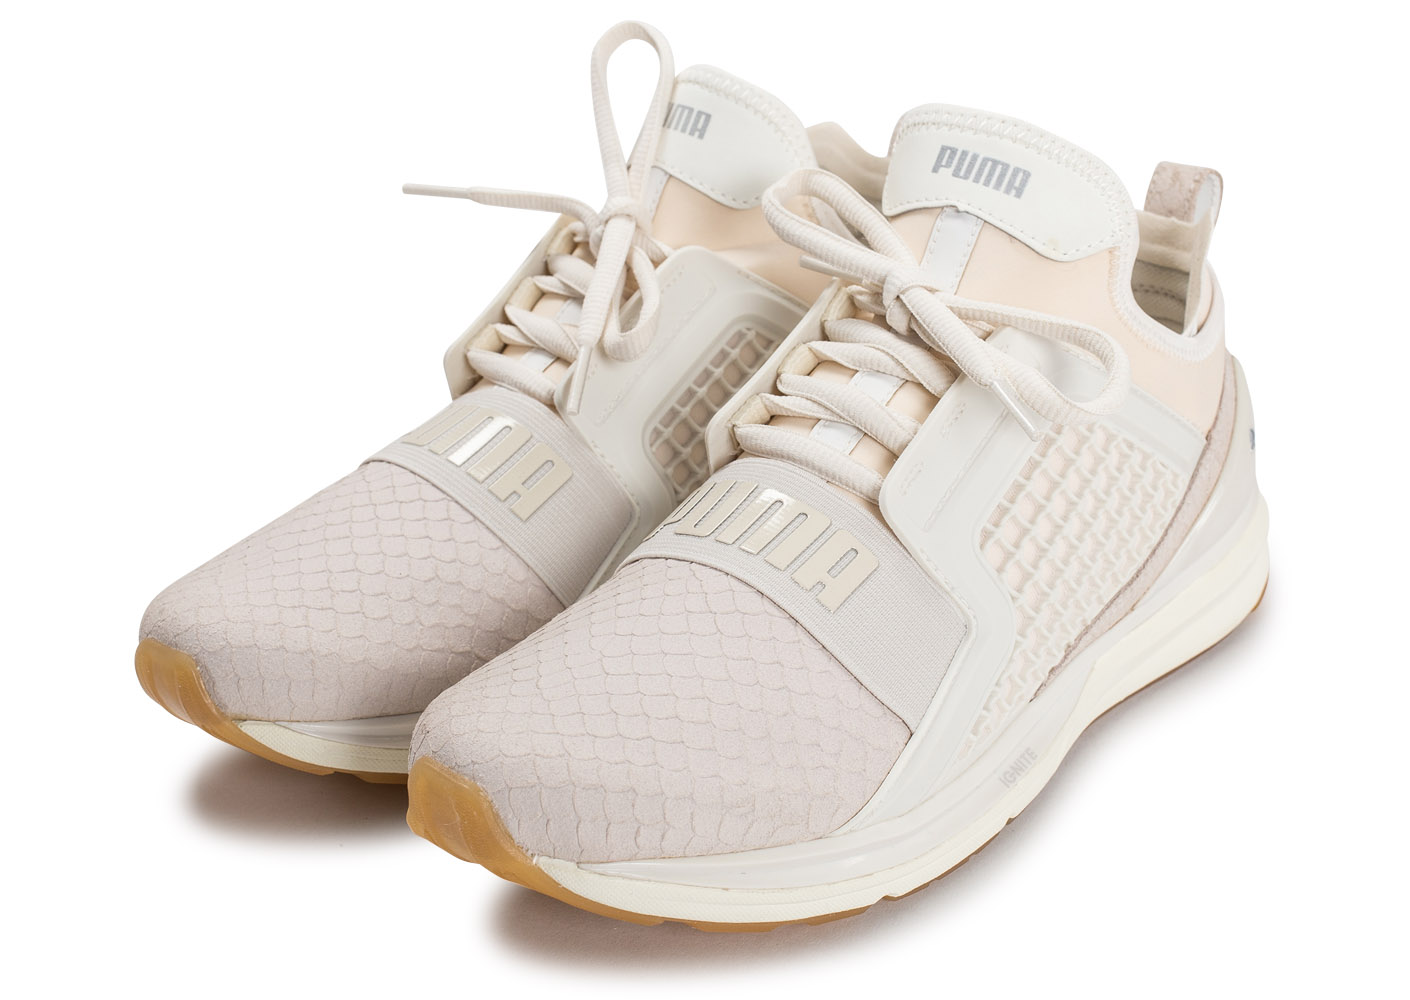 Homme Ignite Puma Limitless Chaussures populaire UIqfnS